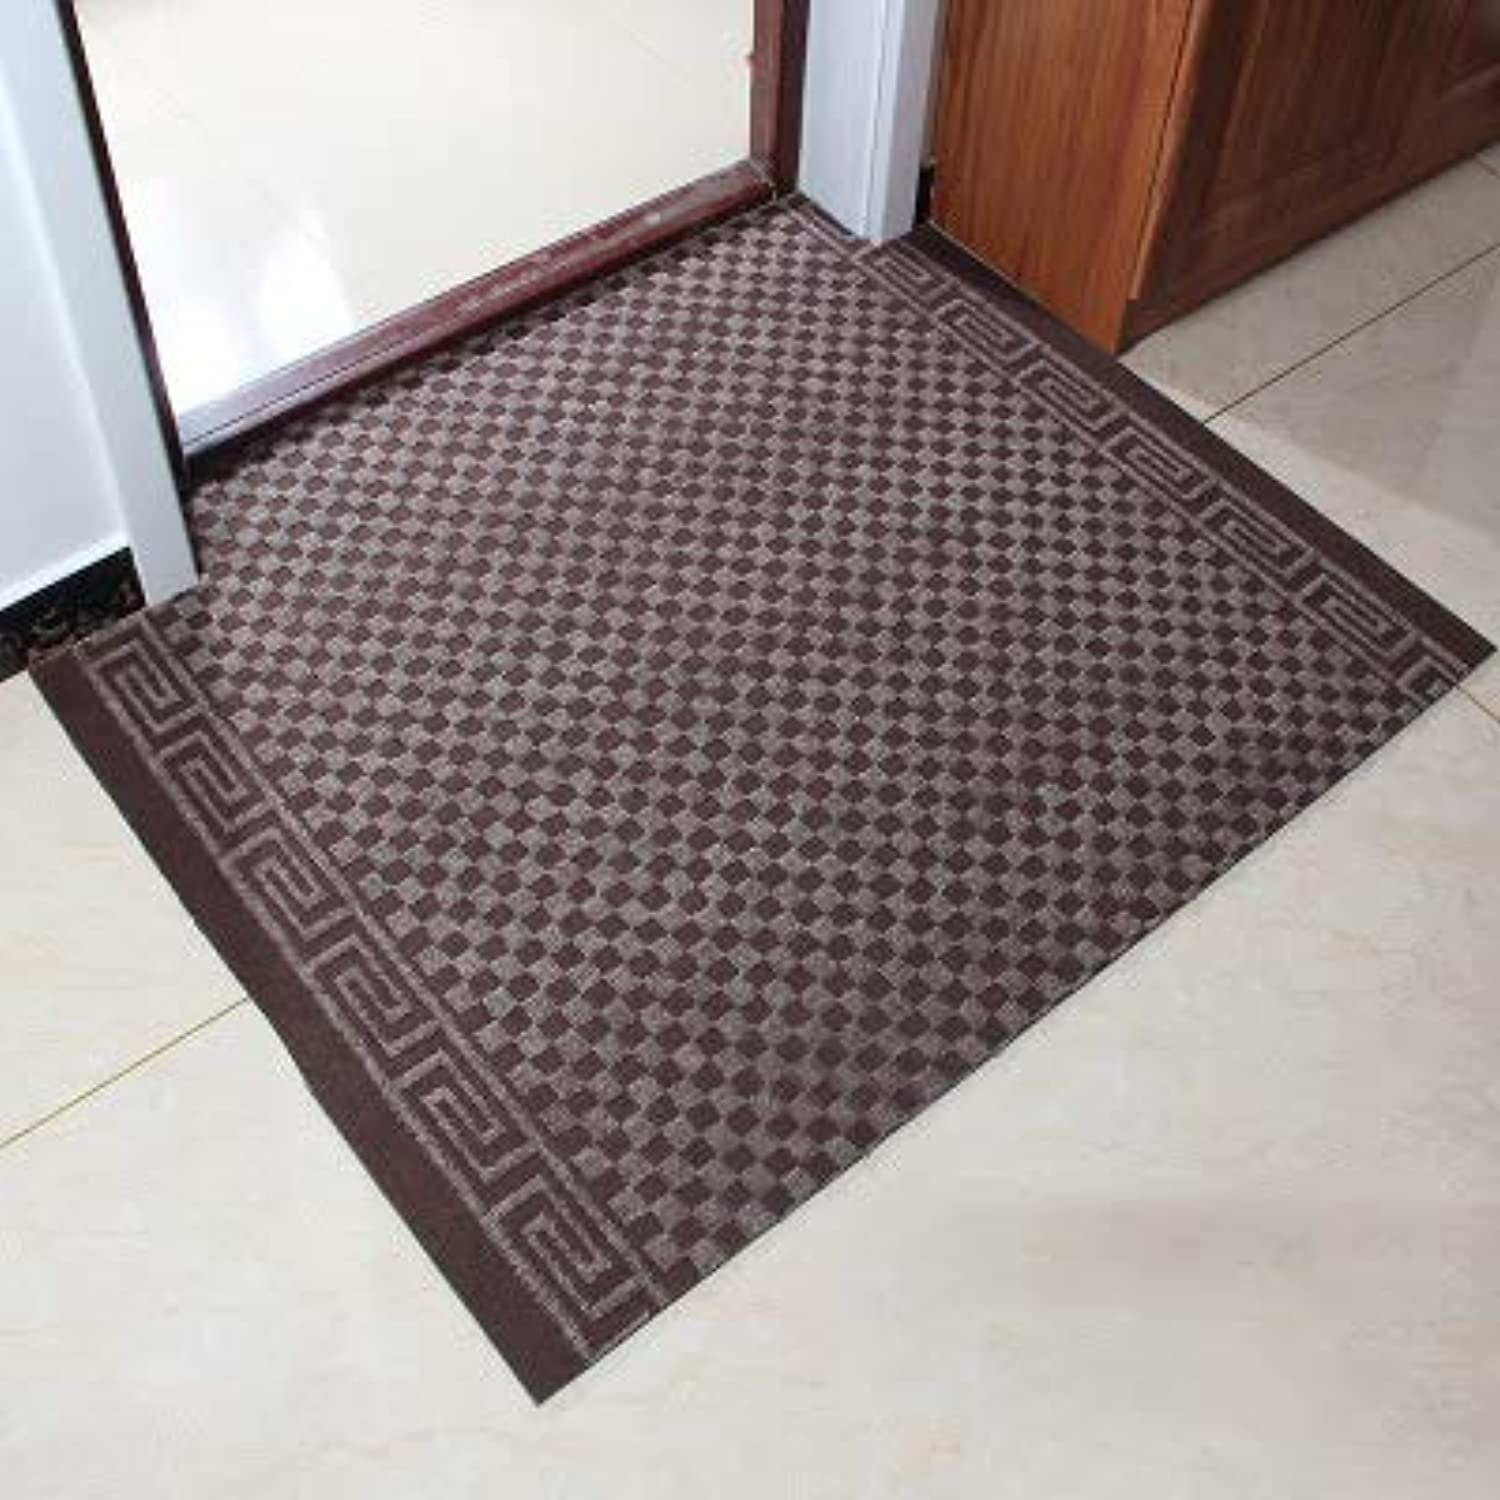 Carpet,Doormat Entrance Carpet No-Slipping mat Welcome mat Easy to Clean-Brown 90x120cm(35x47inch)